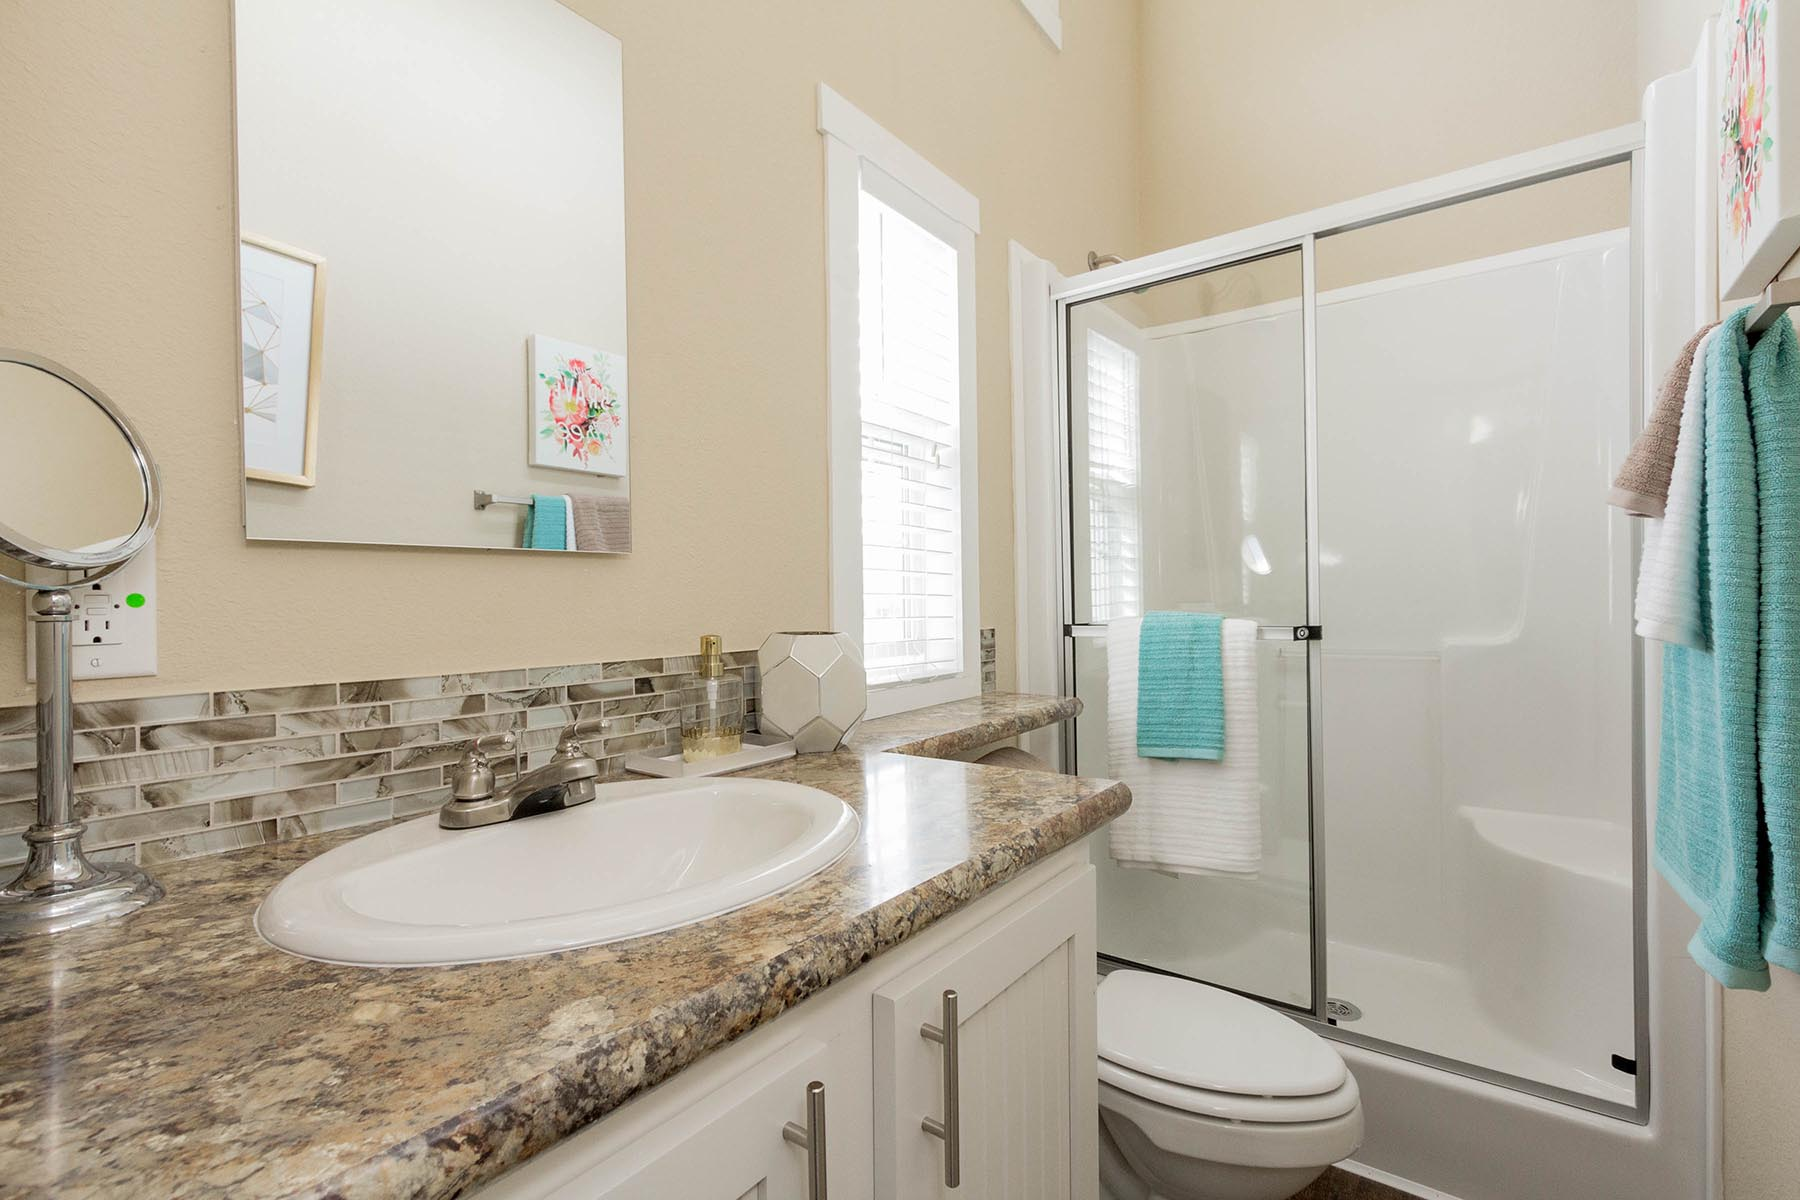 The Malibu APH 505 bathroom 1